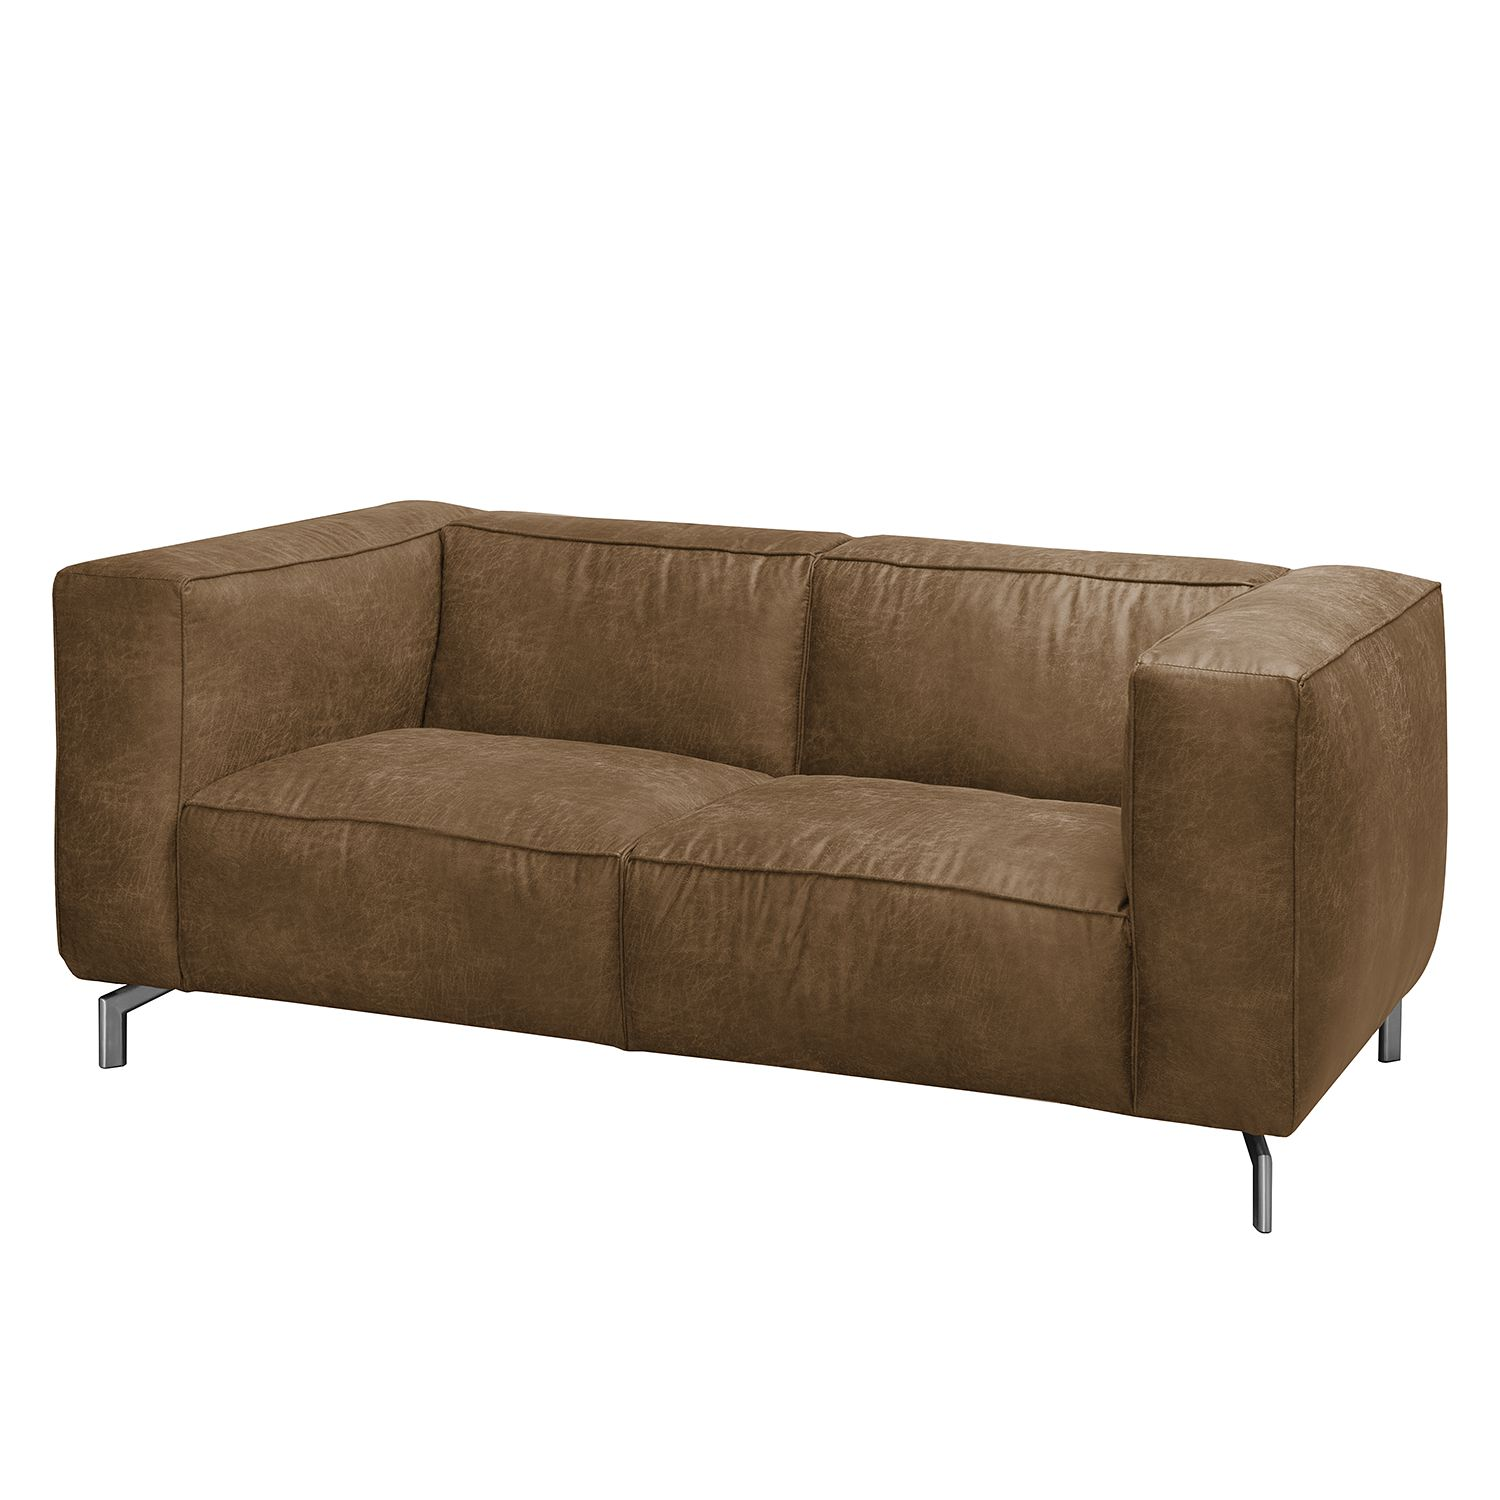 Sofa Pentre (2-Sitzer) Antiklederlook - Camel